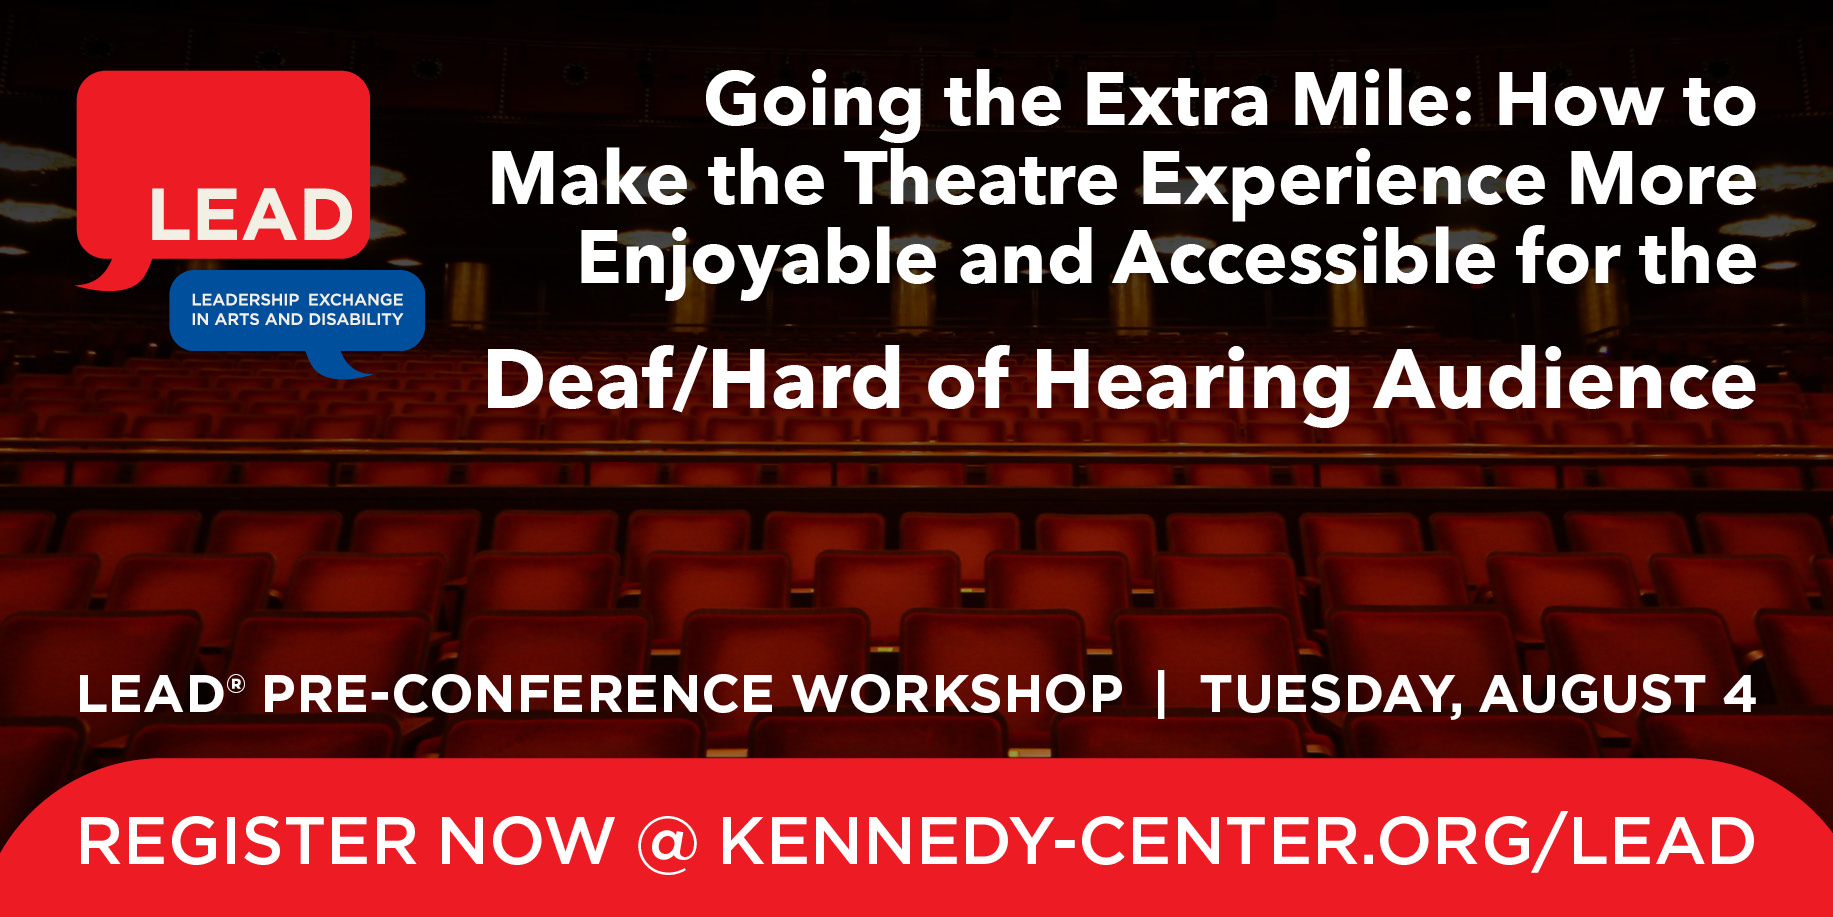 Pre-Conference Graphic: Deaf/Hard of Hearing Audience